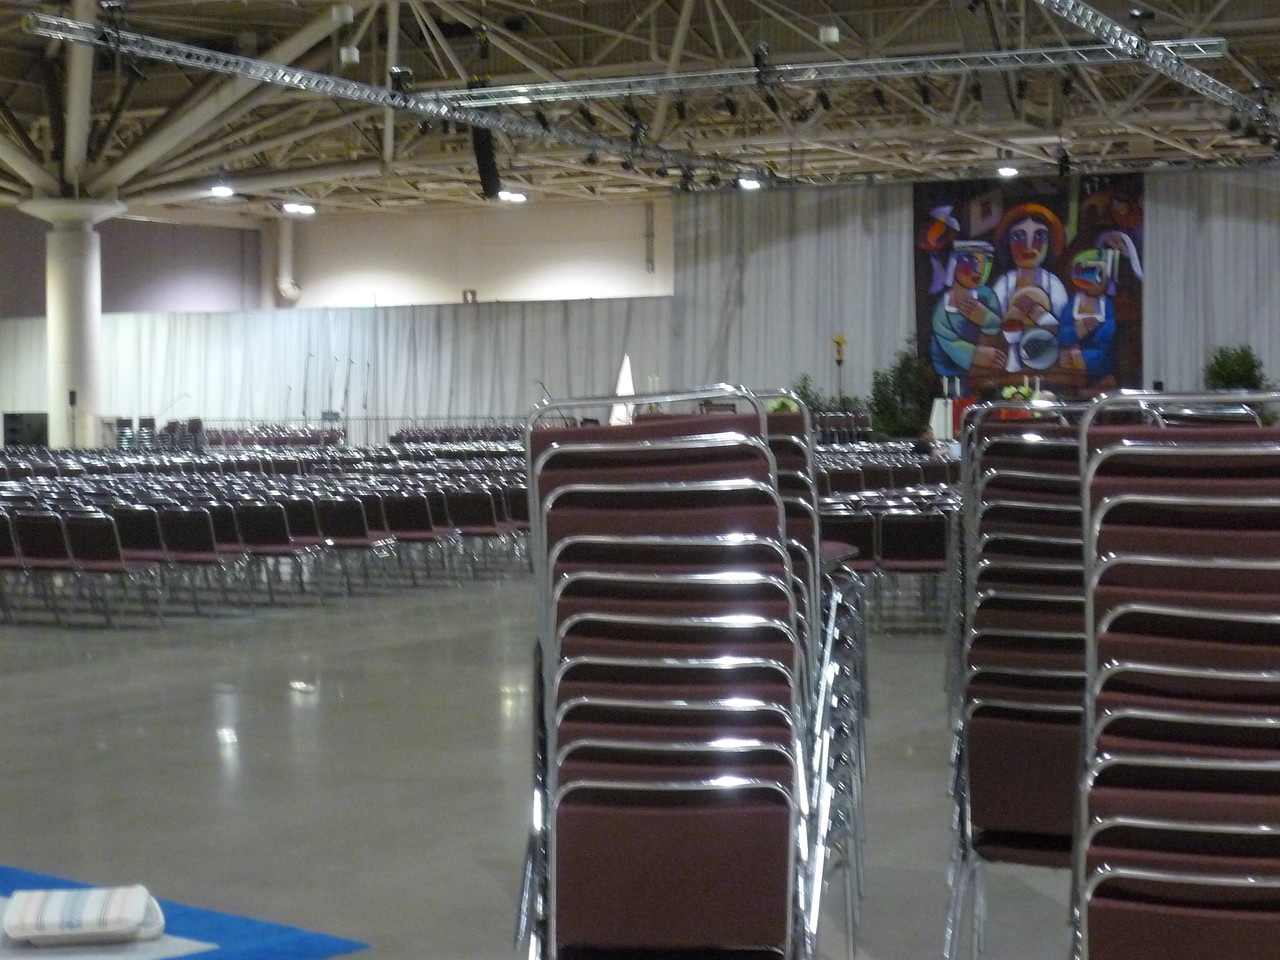 Setting up over a thousand chairs in the worship hall.